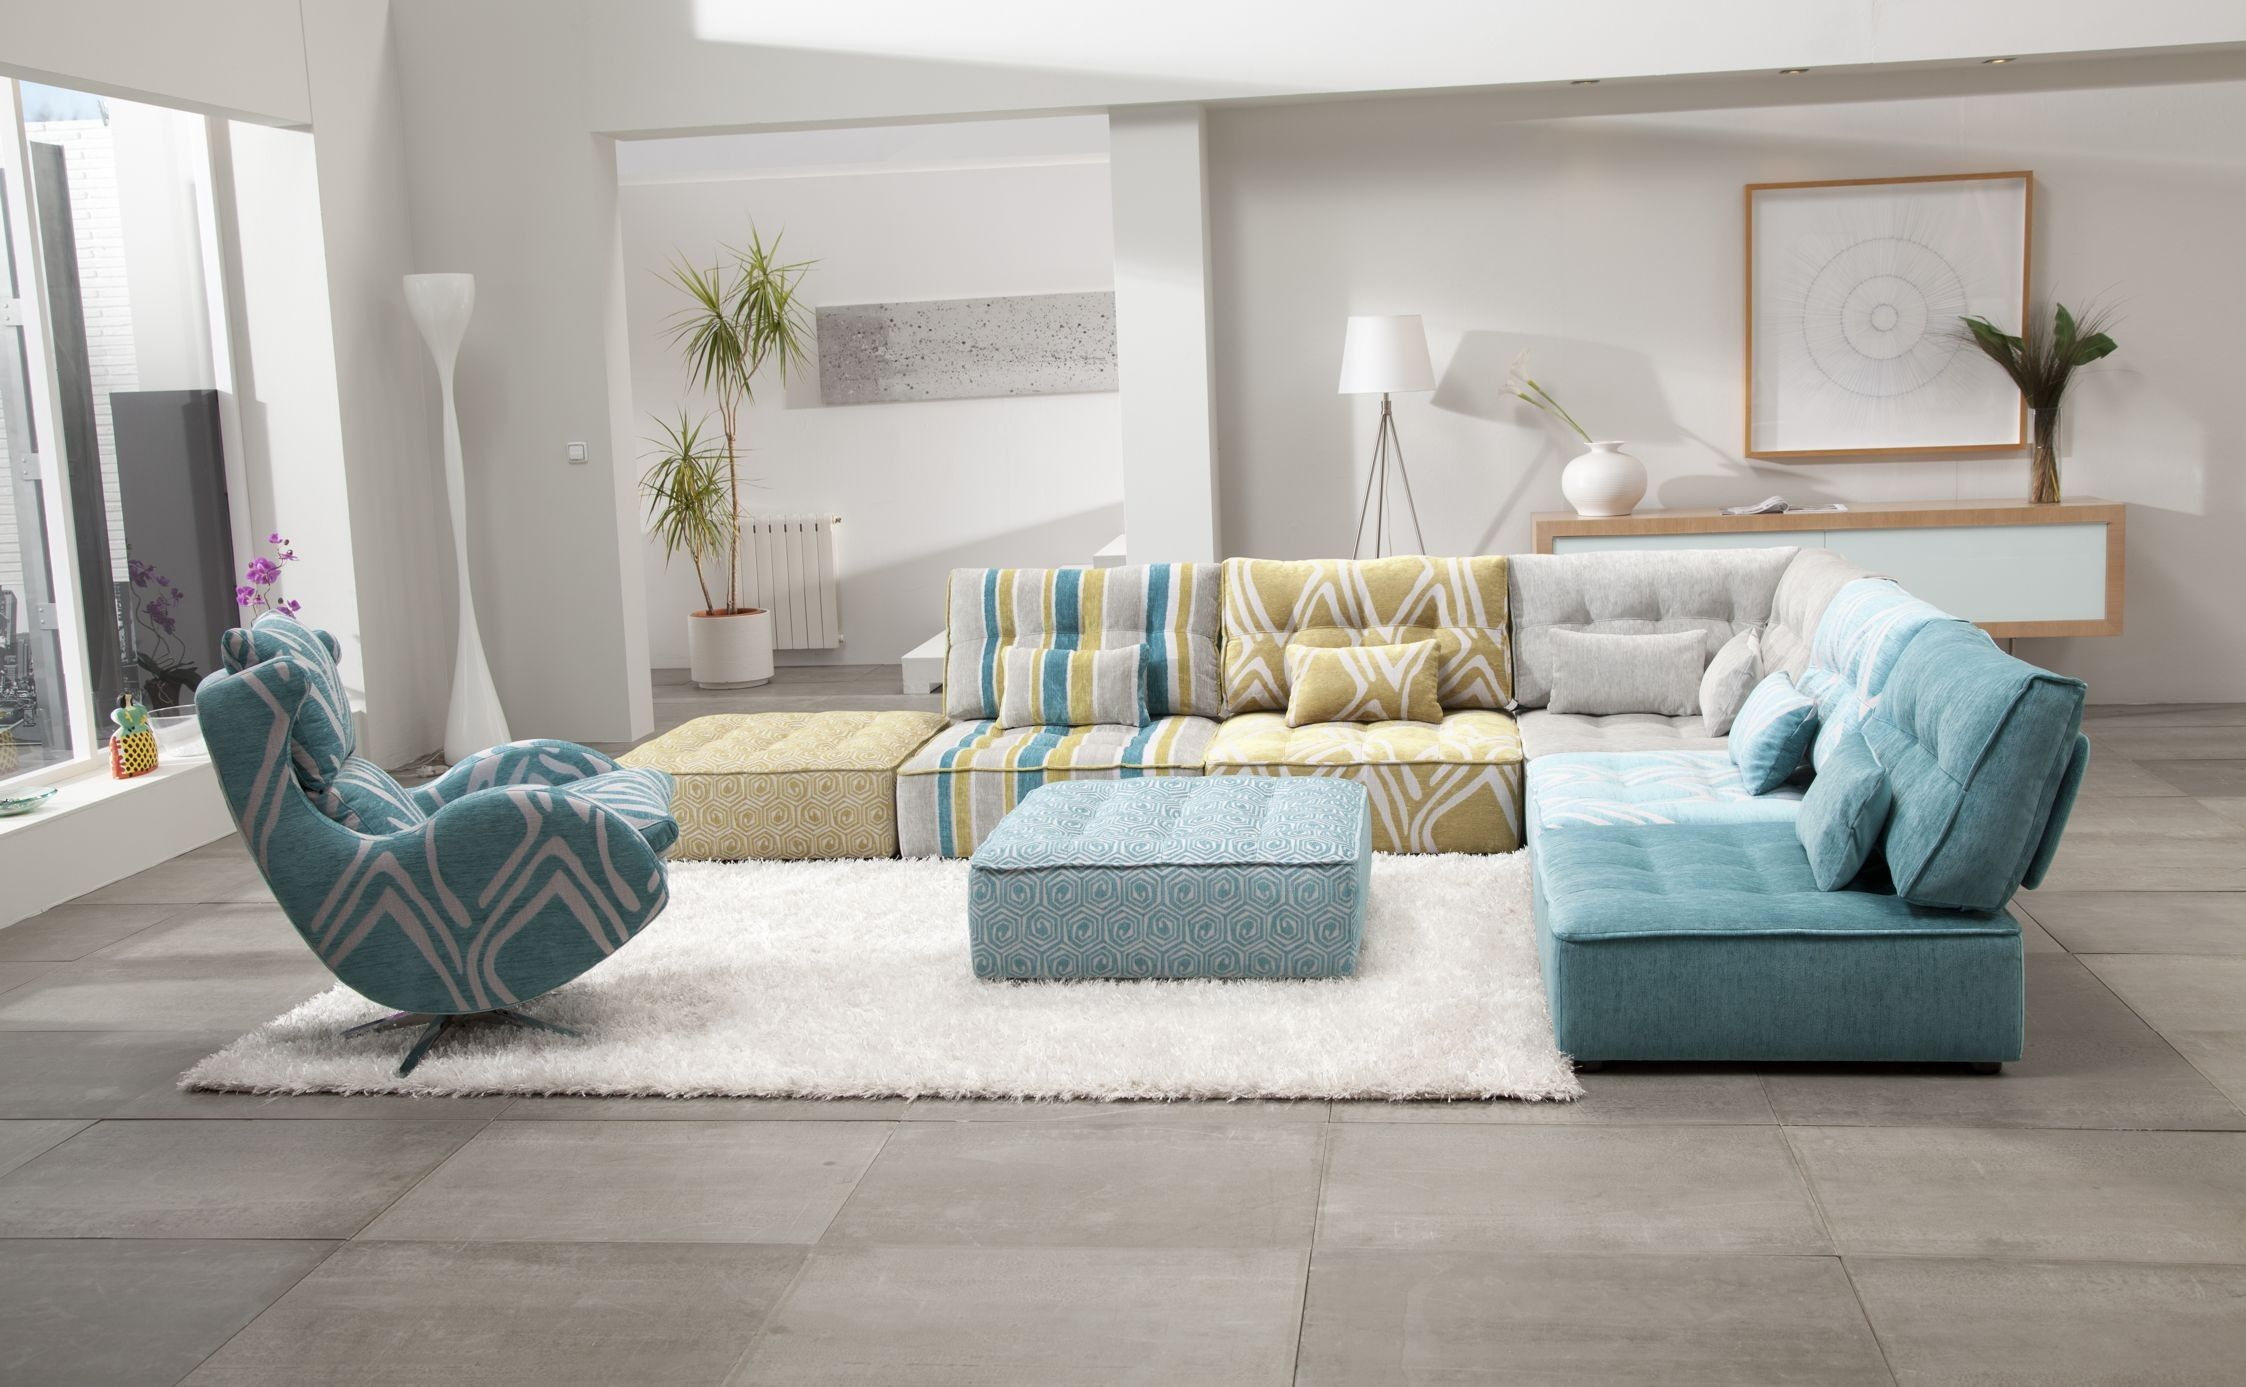 Exterior Living Room Decoration With White Extra Rugs Under